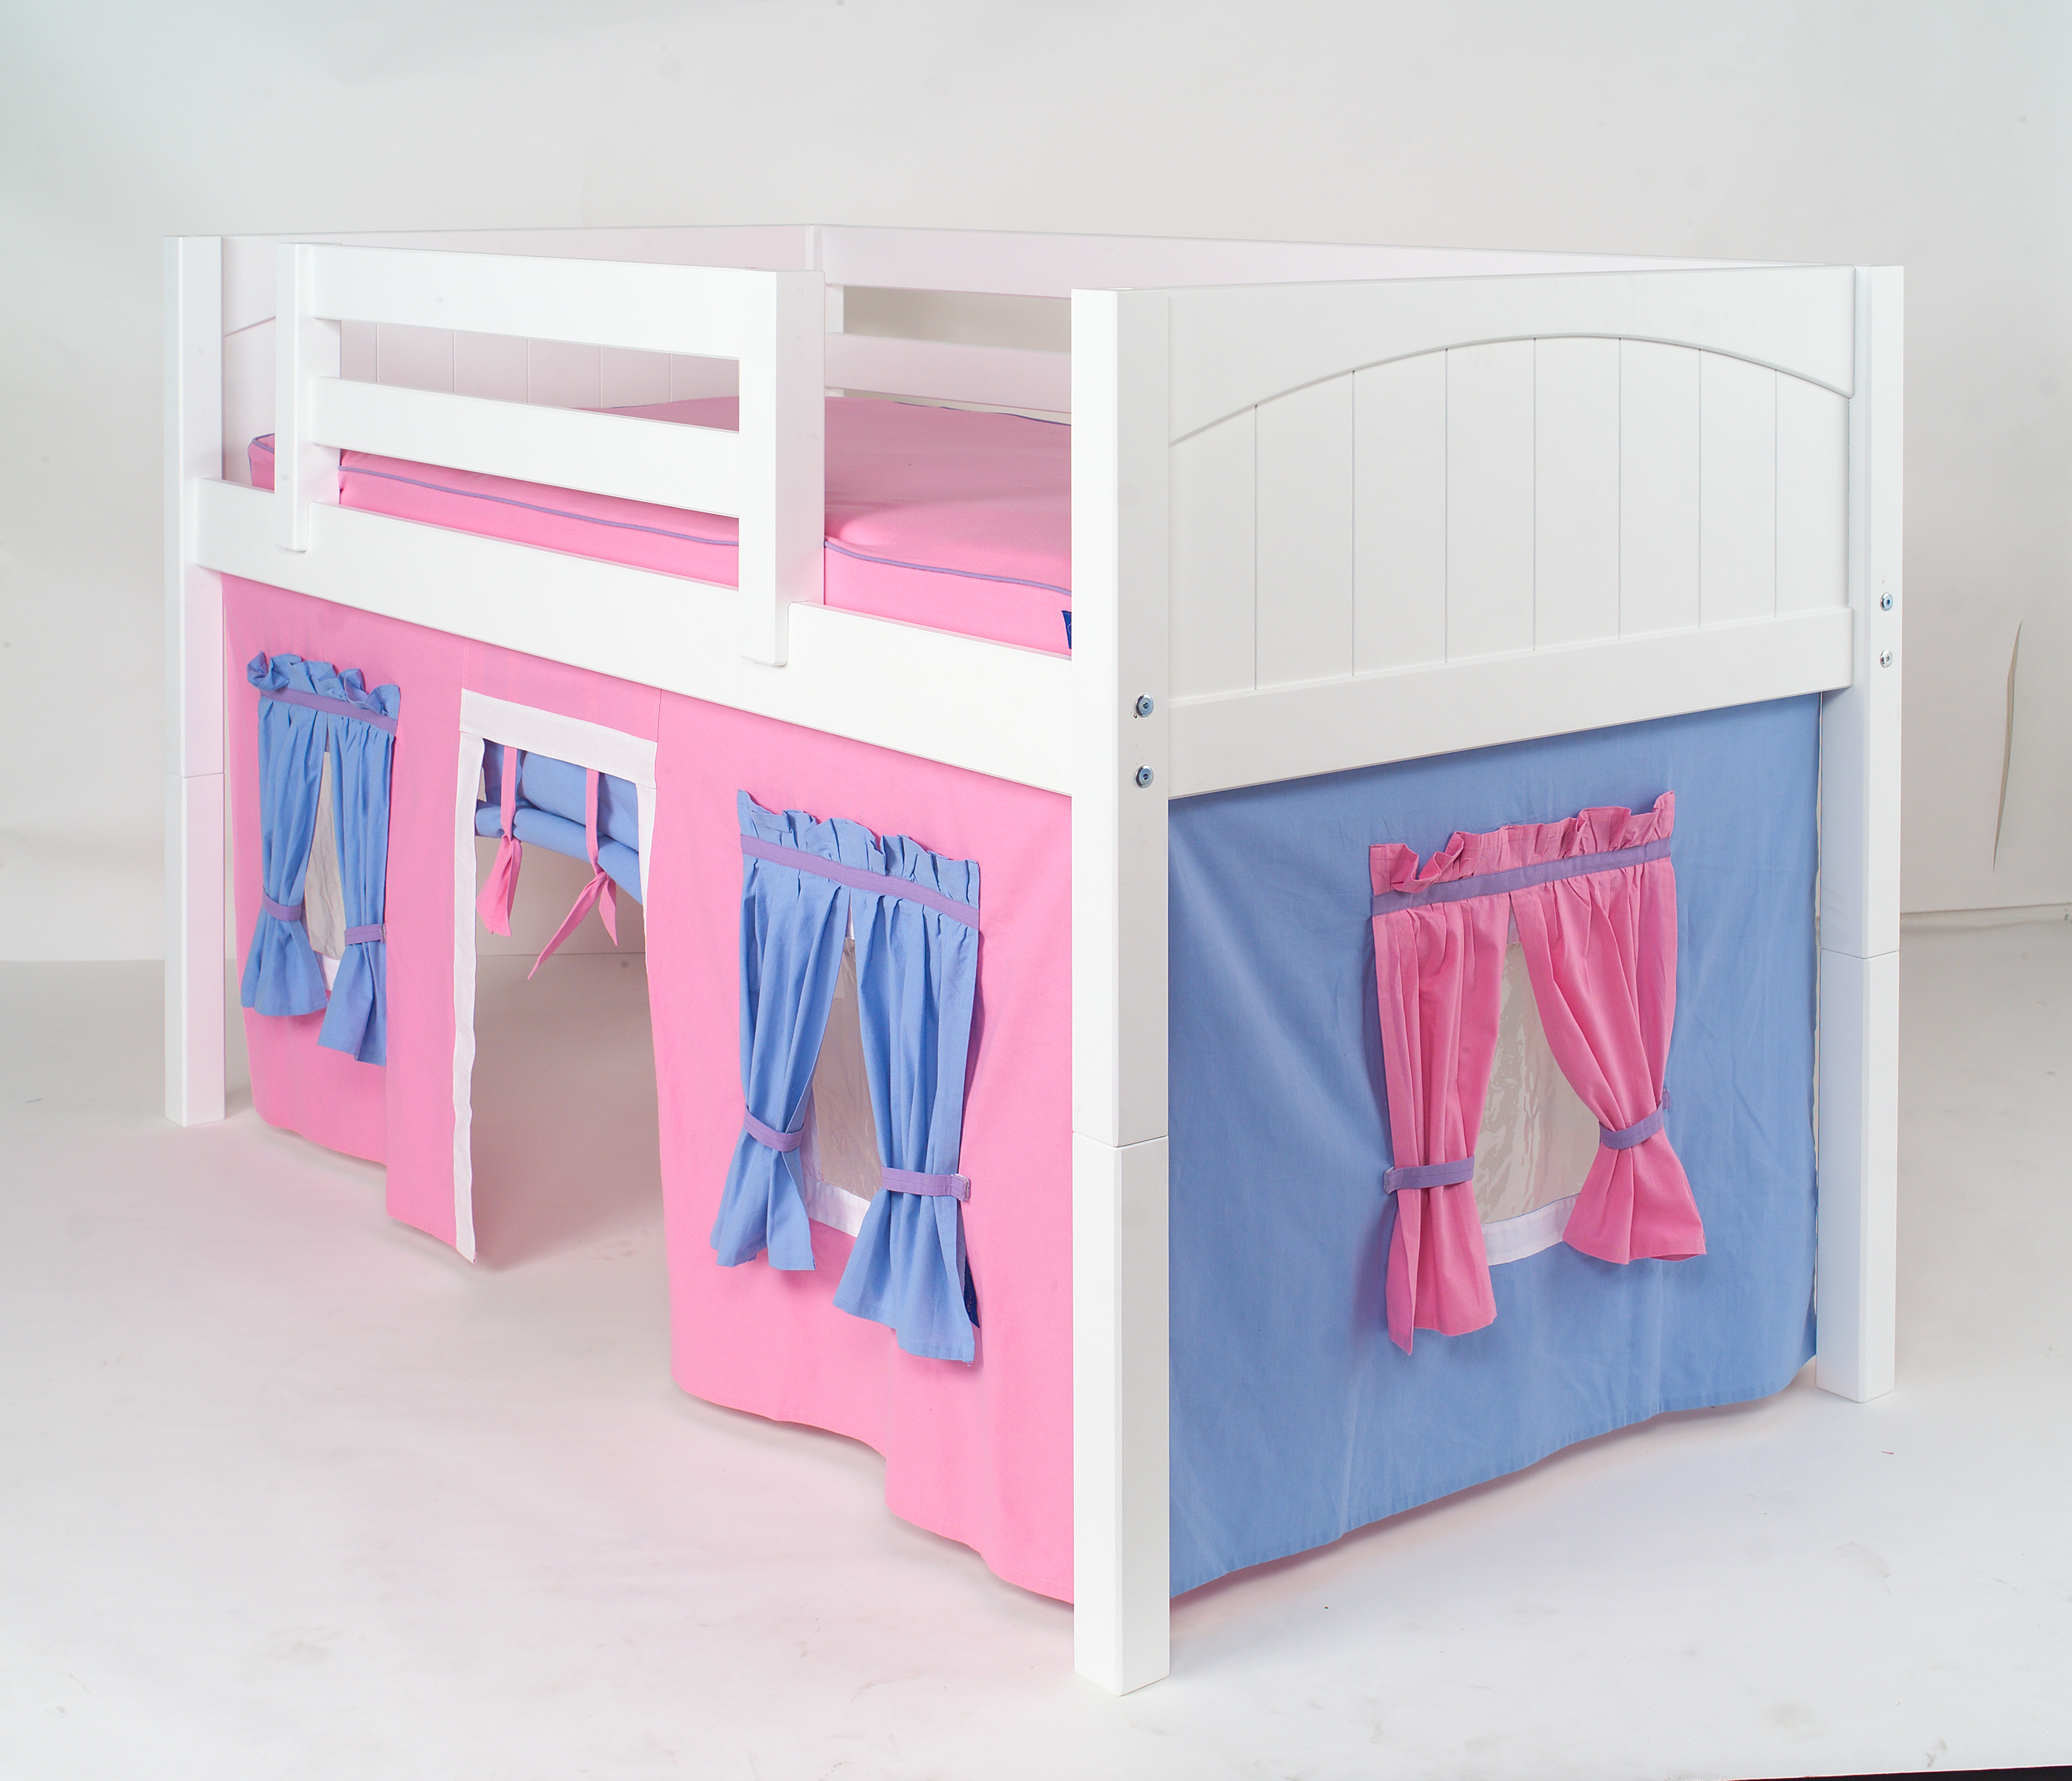 Curtains For Loft Beds - Compare Prices on Curtains For Loft Beds